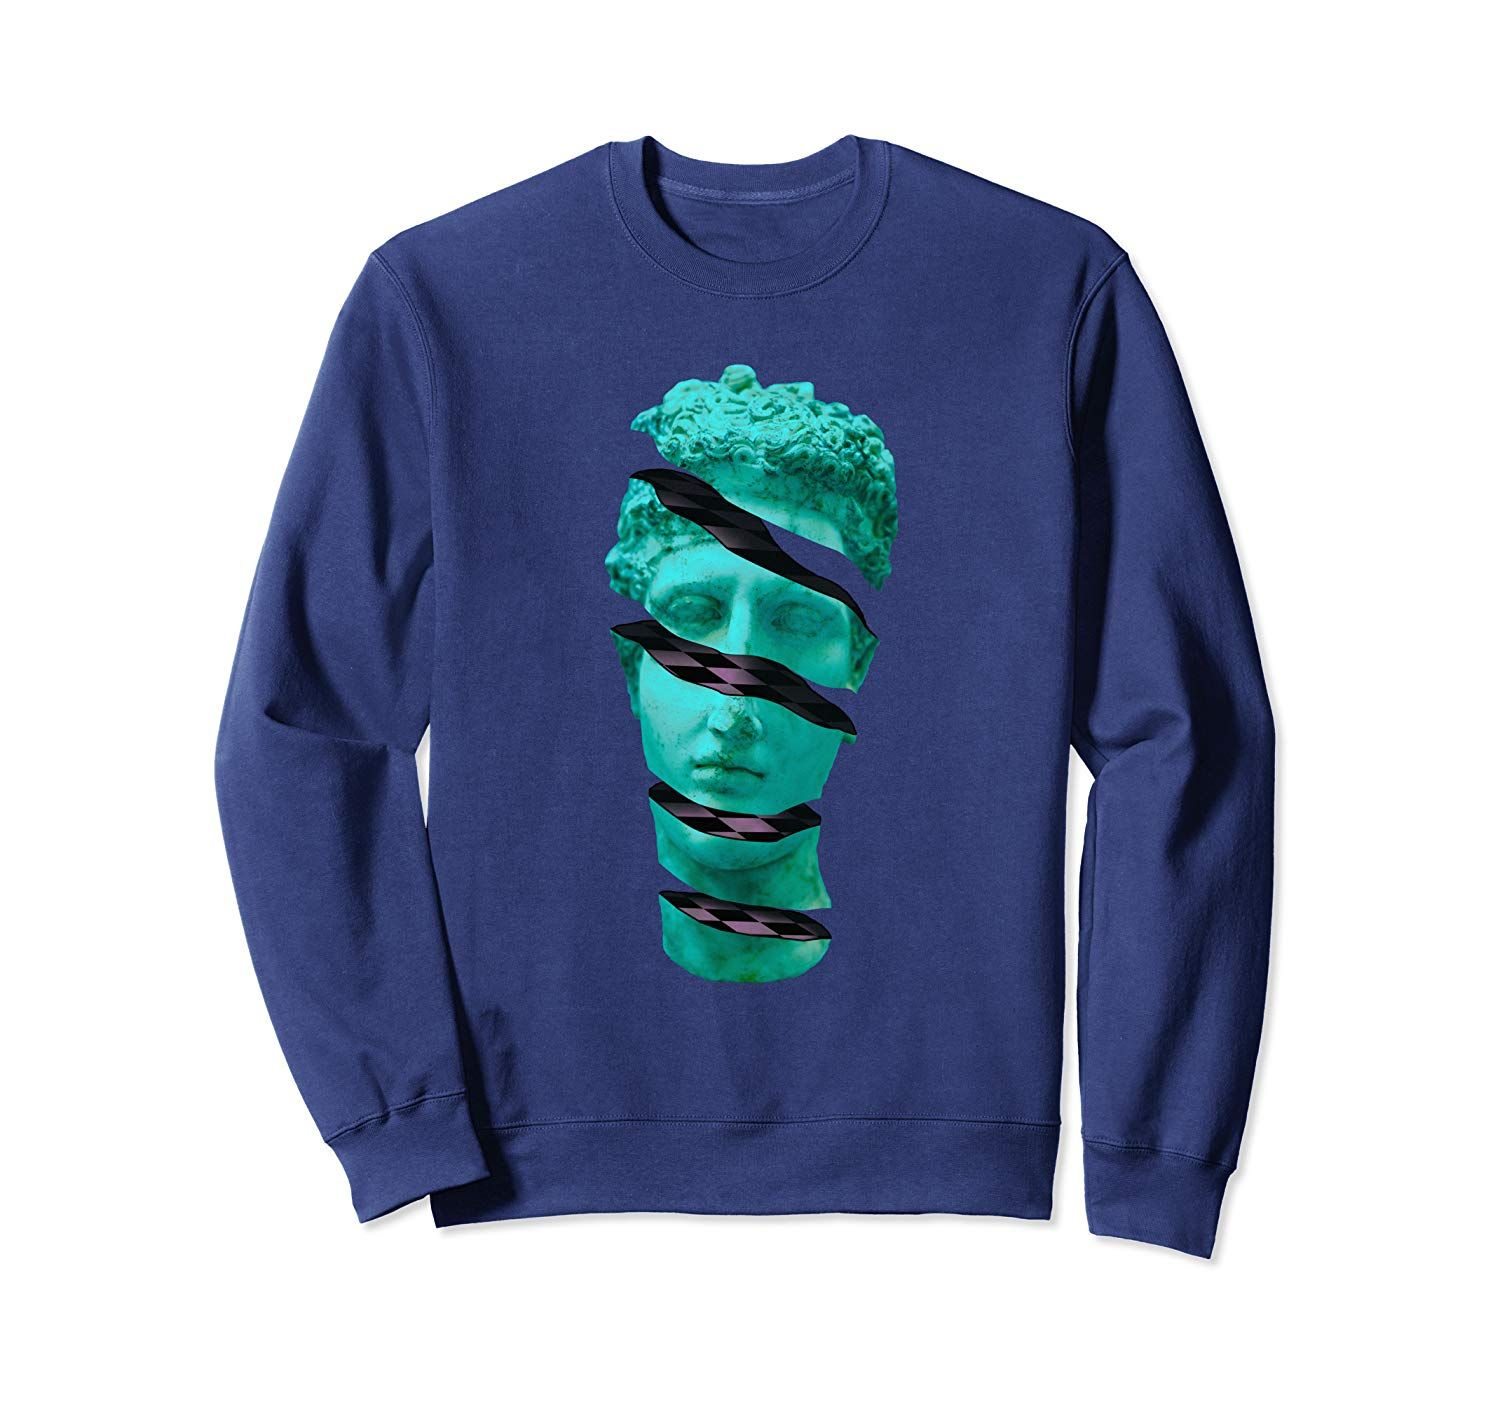 Aesthetic Vaporwave Statue. Sliced Greek Statue Design Gift Sweatshirt #greekstatue